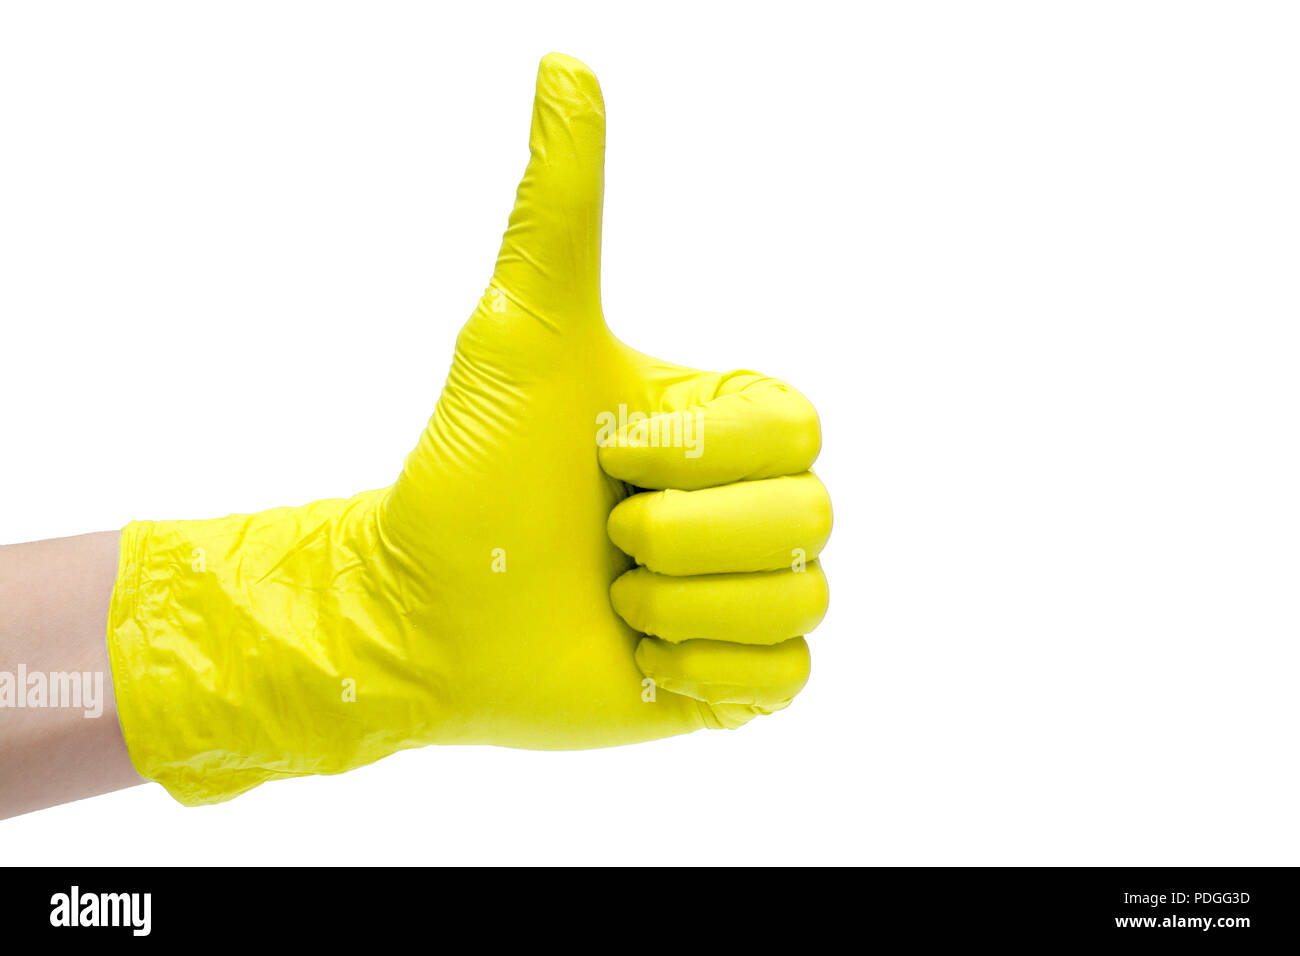 Like sign icon made of yellow medical gloves. Hand finger up symbol. Thumbs up gesture. Isolated on white background - Stock Image